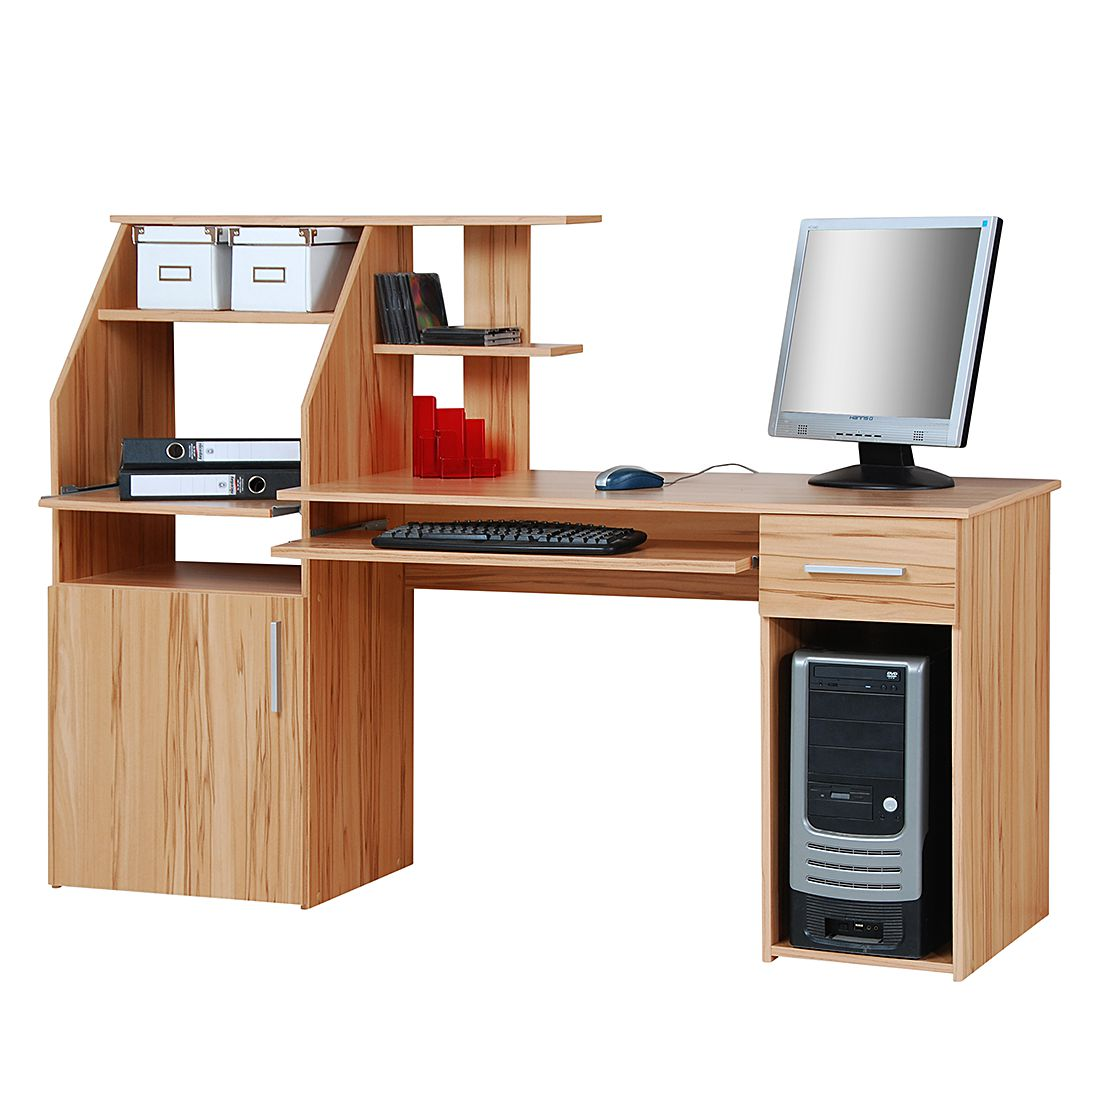 bureau pour ordinateur glen imitation prix et offres home24 office. Black Bedroom Furniture Sets. Home Design Ideas